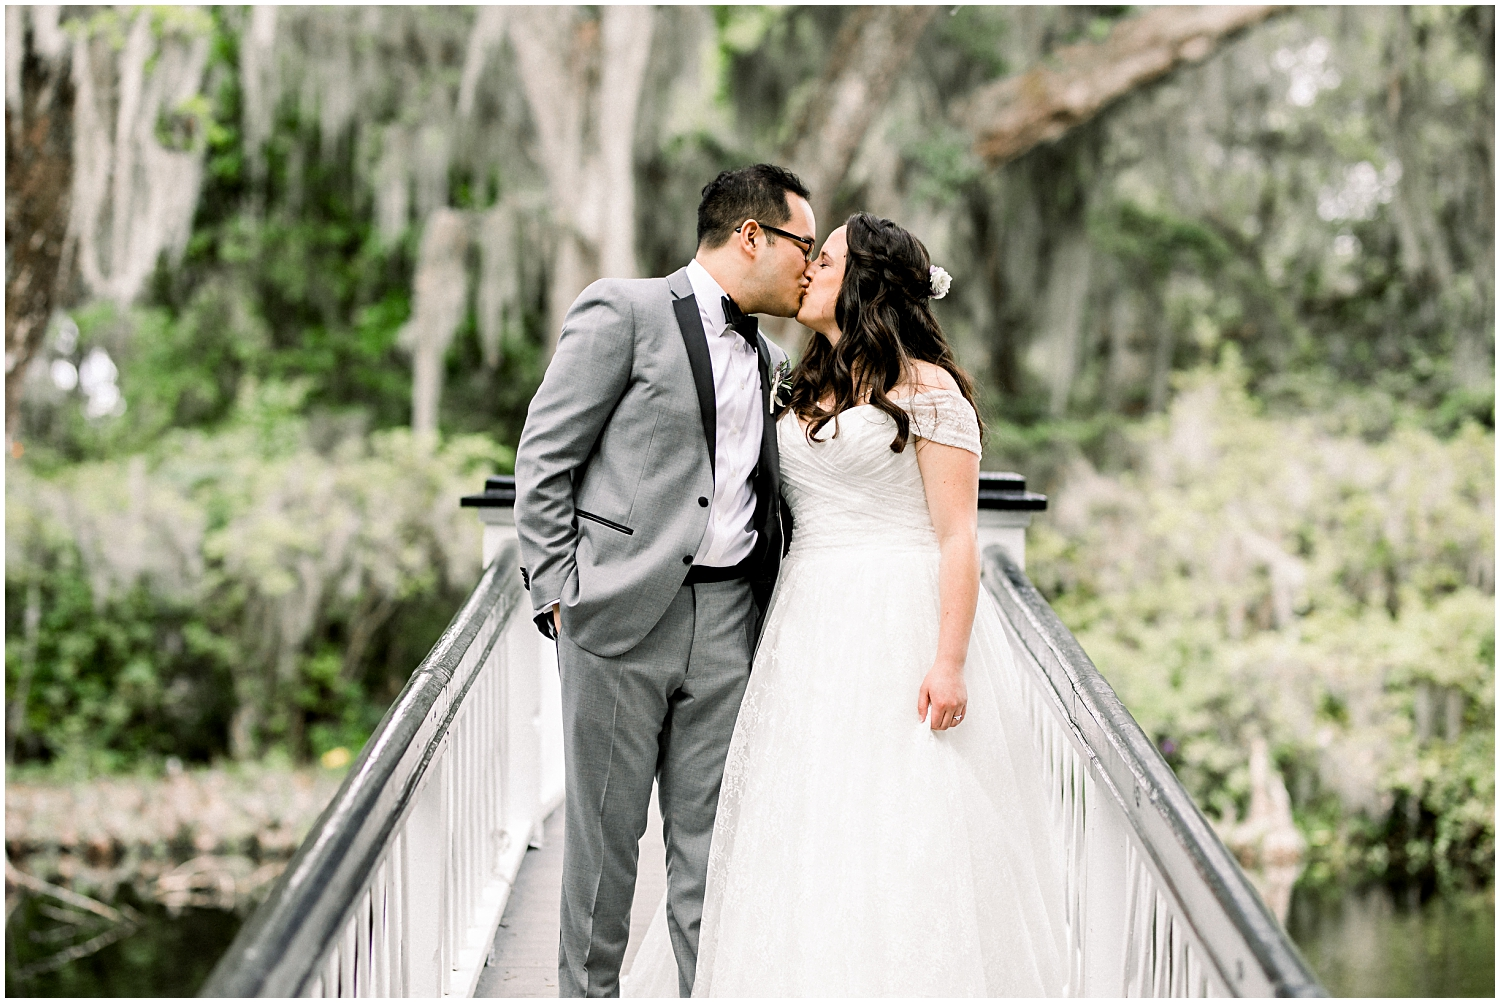 Magnolia Gardens Wedding, Charleston, SC_Erin L. Taylor Photography_0032.jpg